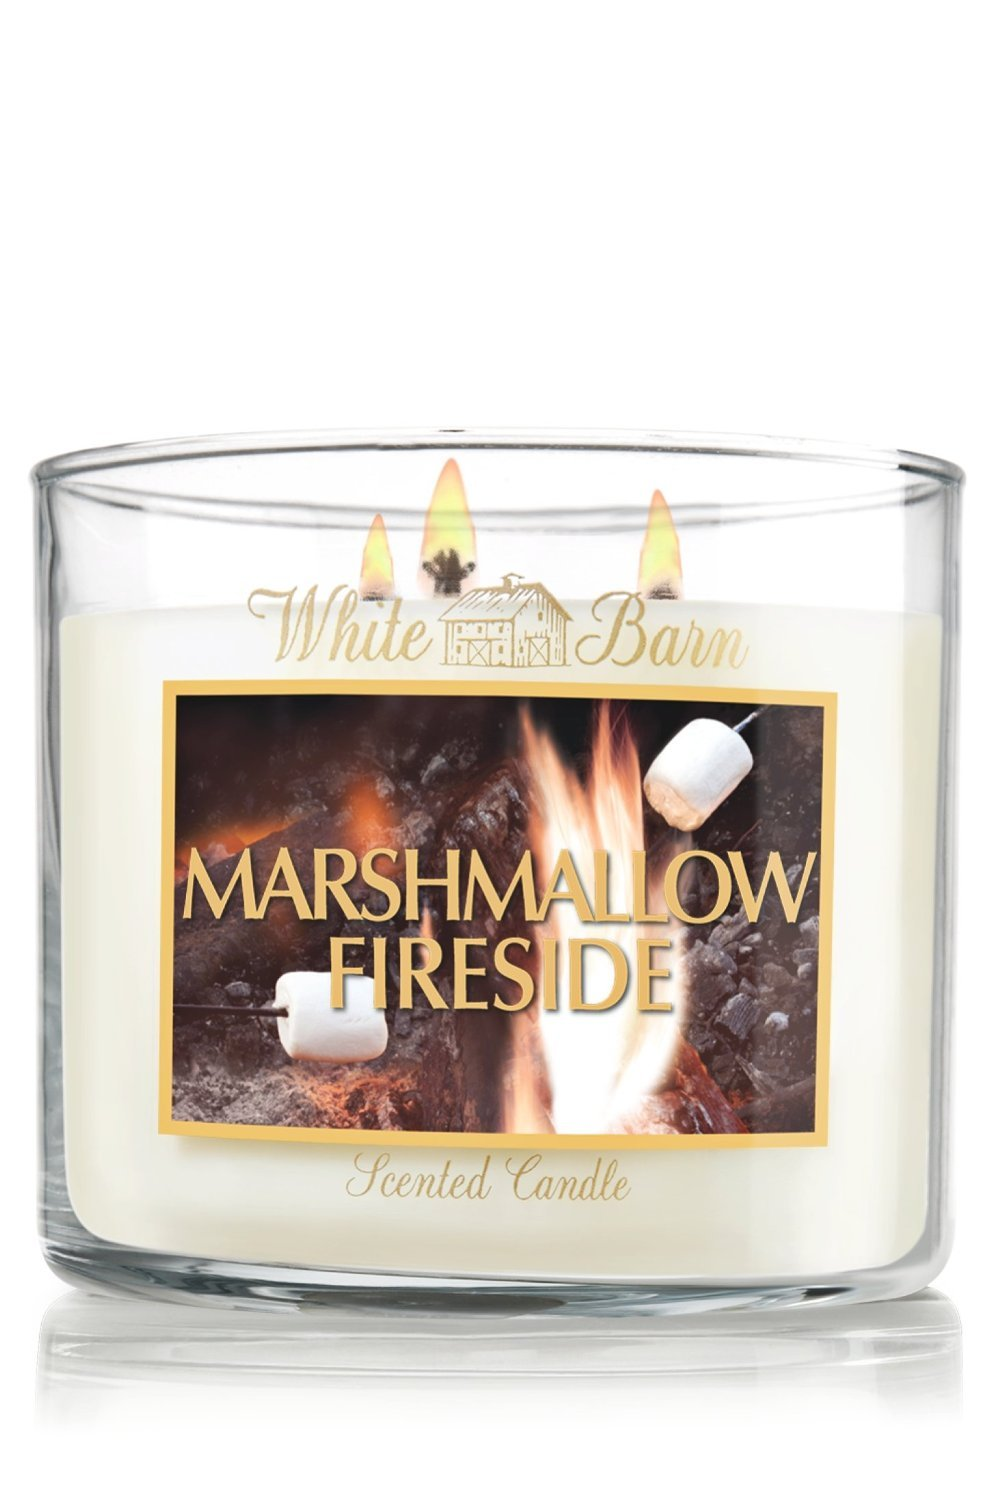 bath body works slatkin co marshmallow fireside scented candle 14 5 oz 411 candles. Black Bedroom Furniture Sets. Home Design Ideas